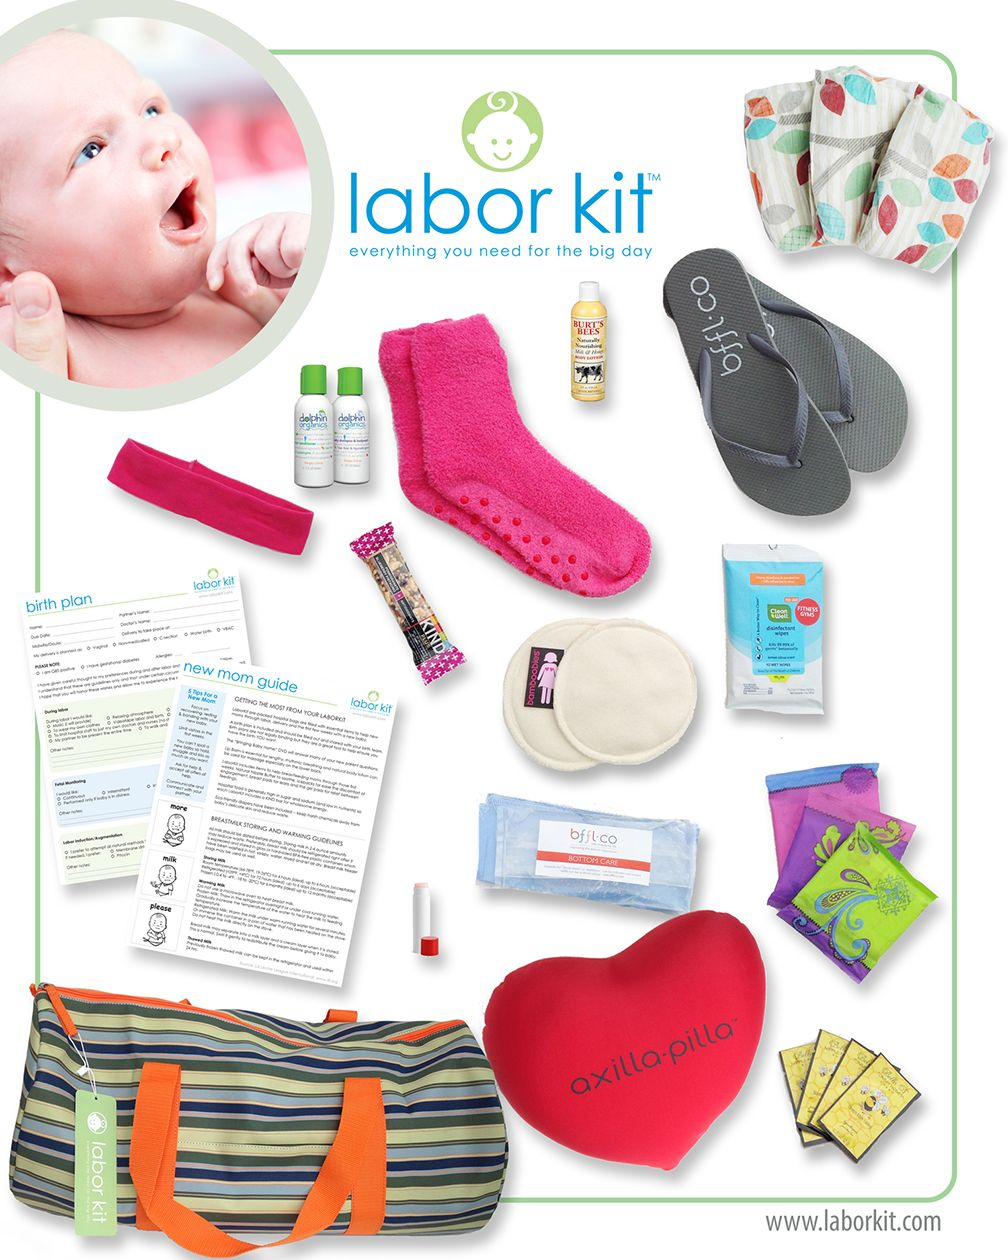 Our LaborKit includes biodegradable diapers, organic